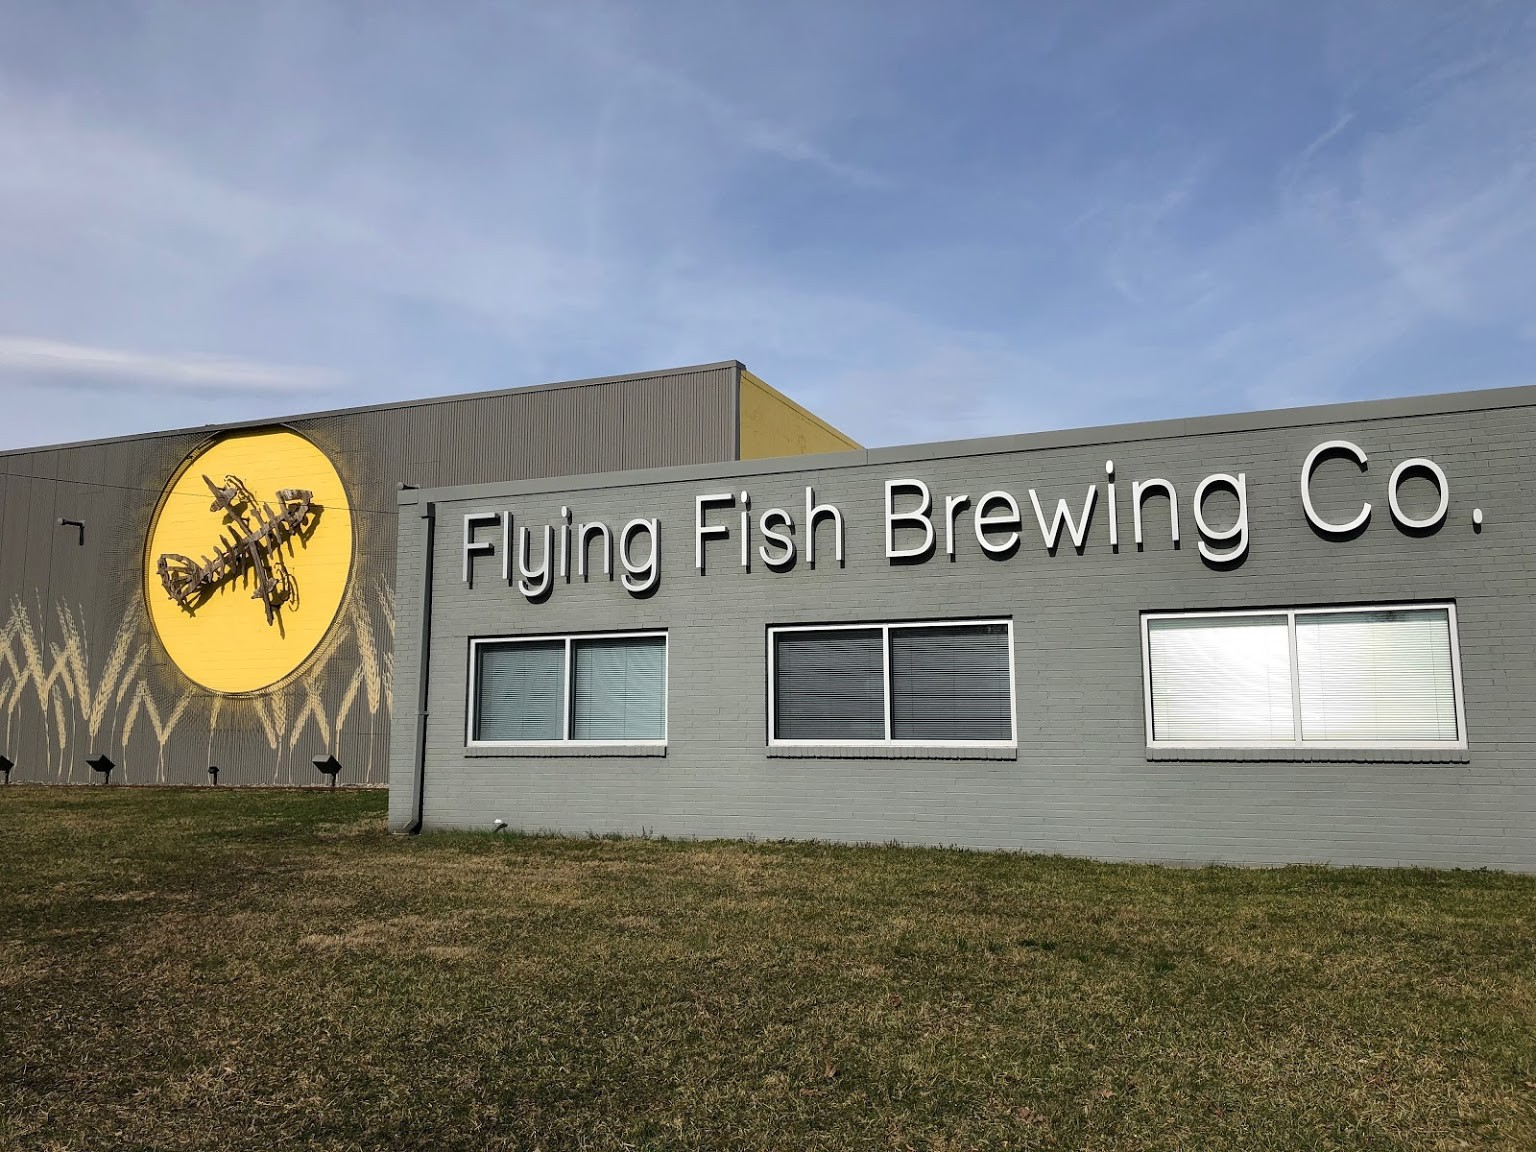 exterior Flying Fish Brewing Co, Somerdale, NJ